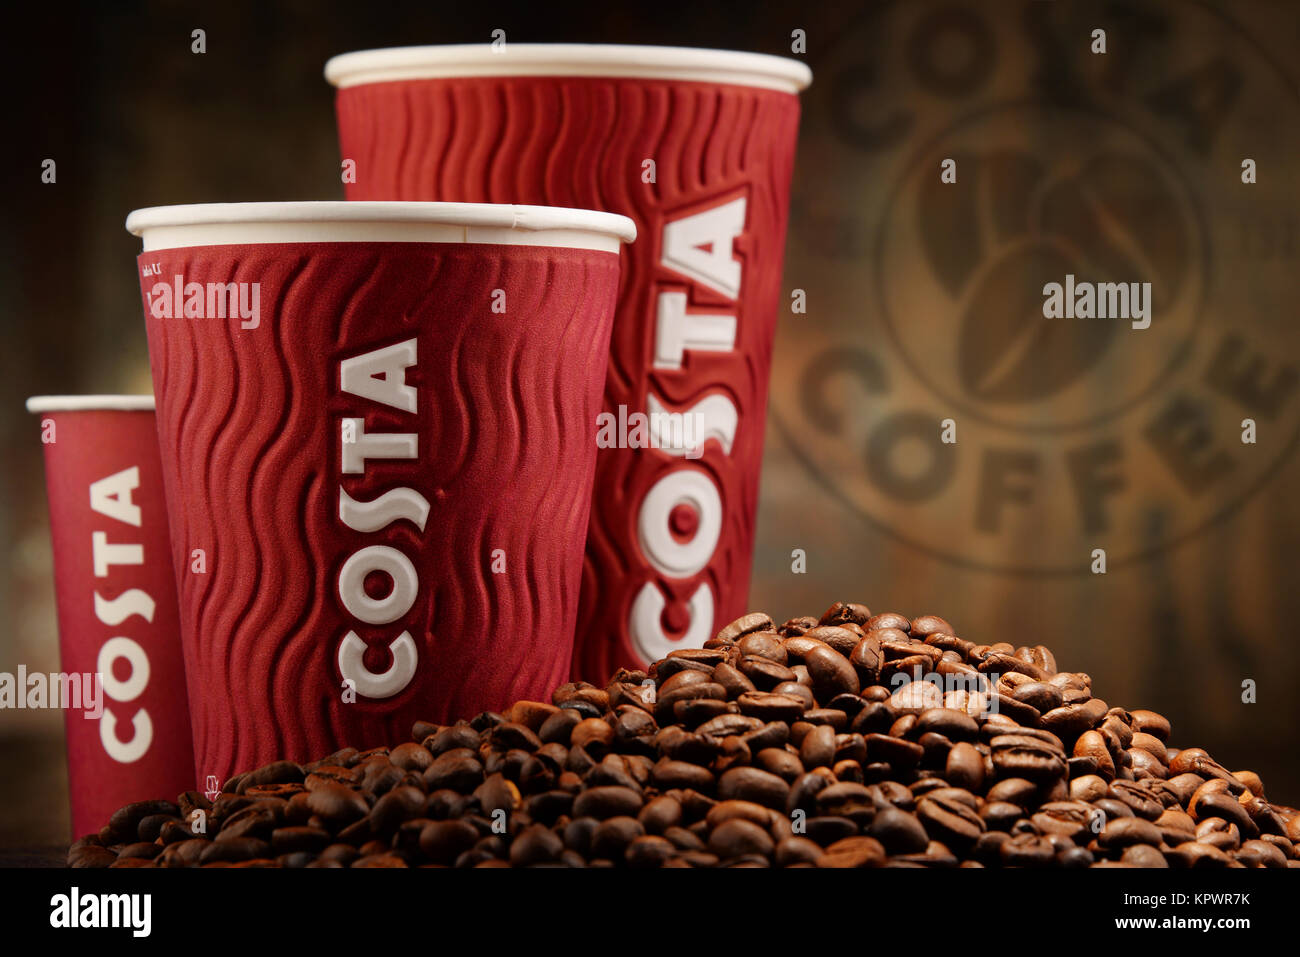 Composition with cups of Costa Coffee coffee and beans - Stock Image